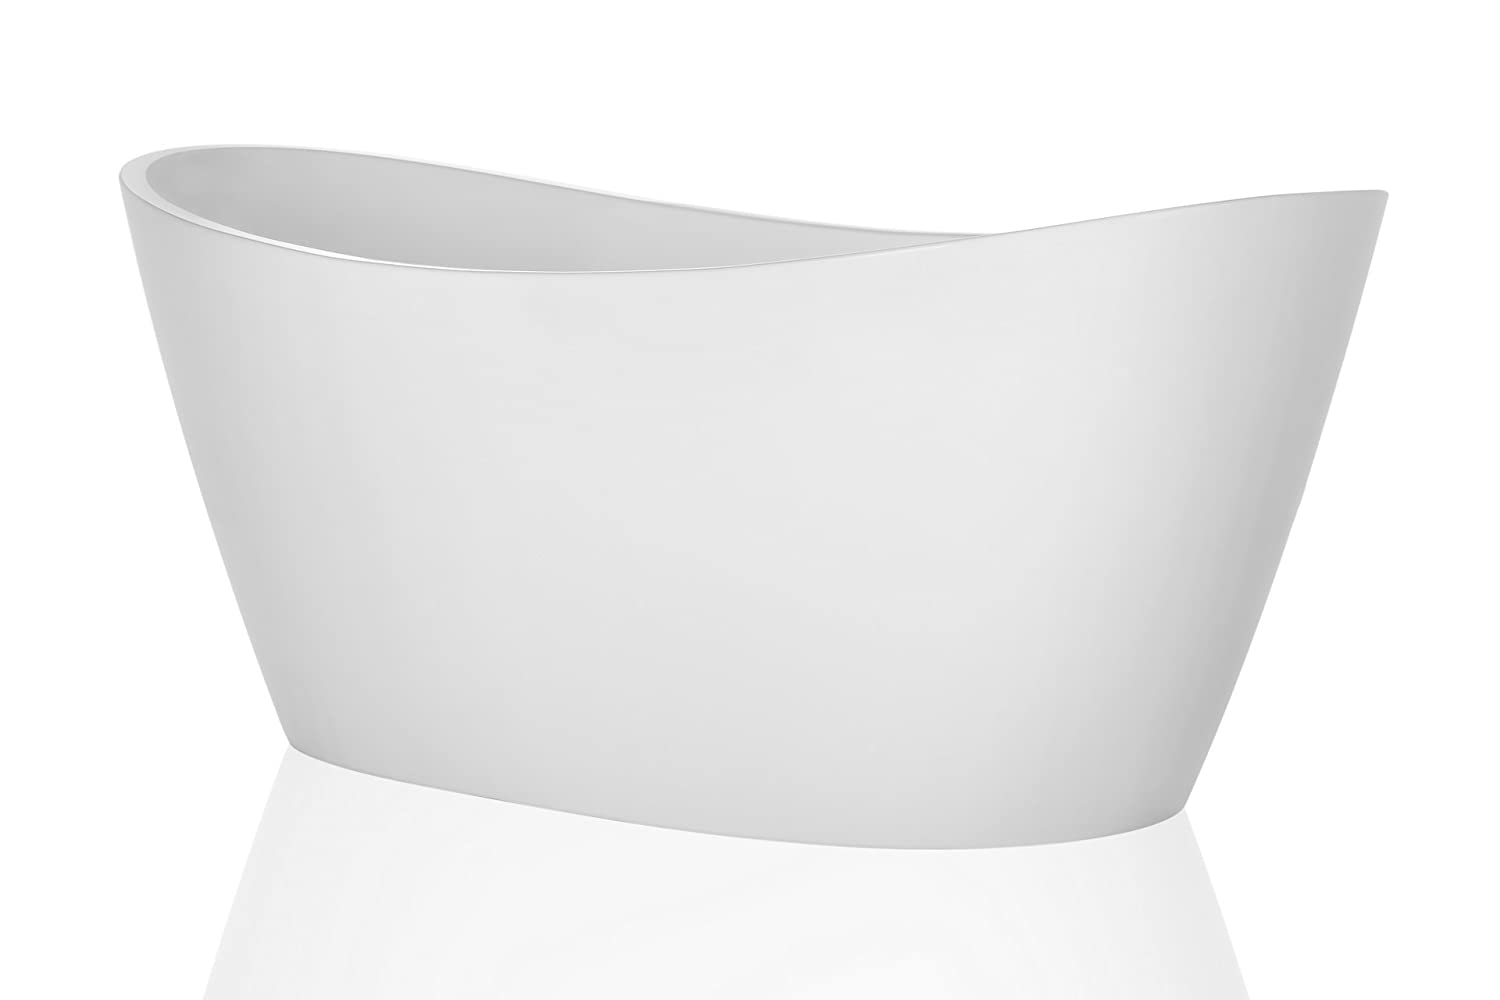 2.Empava Luxury Freestanding Bathtub